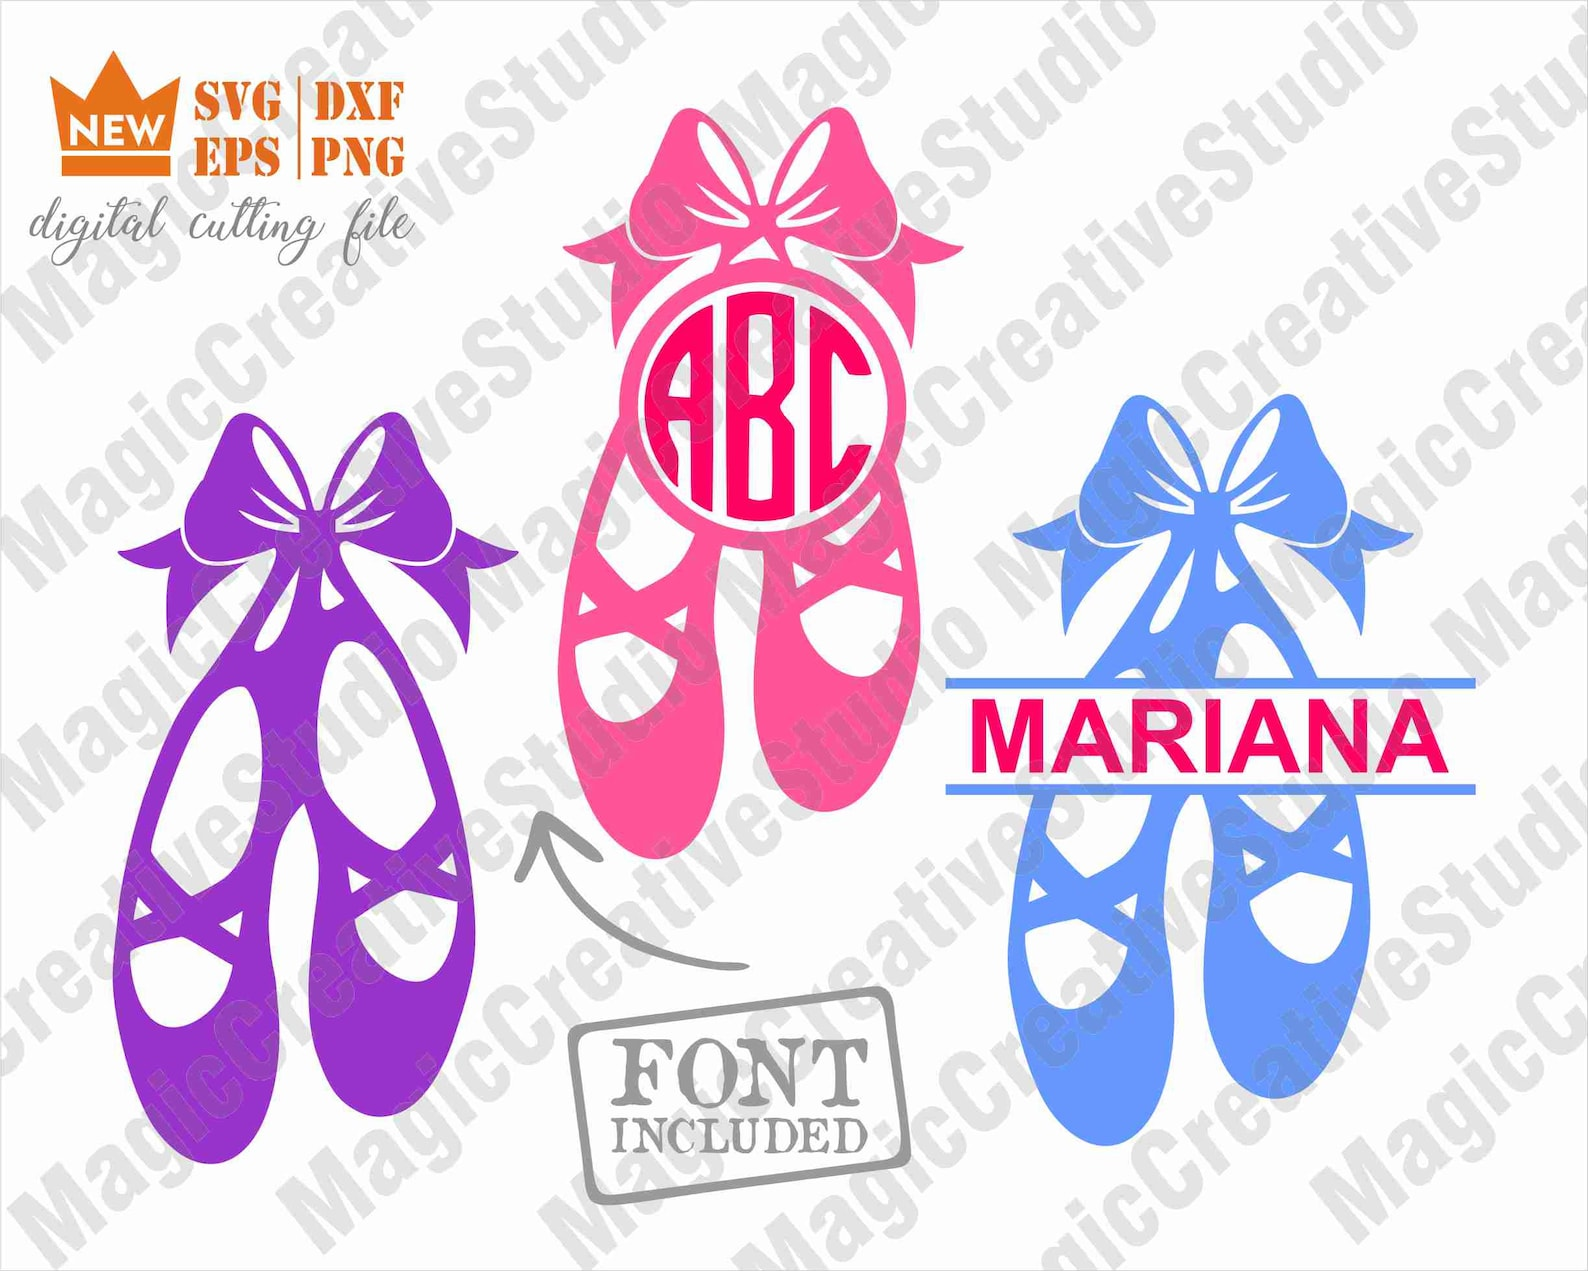 ballerina svg / ballet shoes svg / ballet shoes monogram svg / dance svg / svg, png, dxf, eps files / silhouette cut files, cric